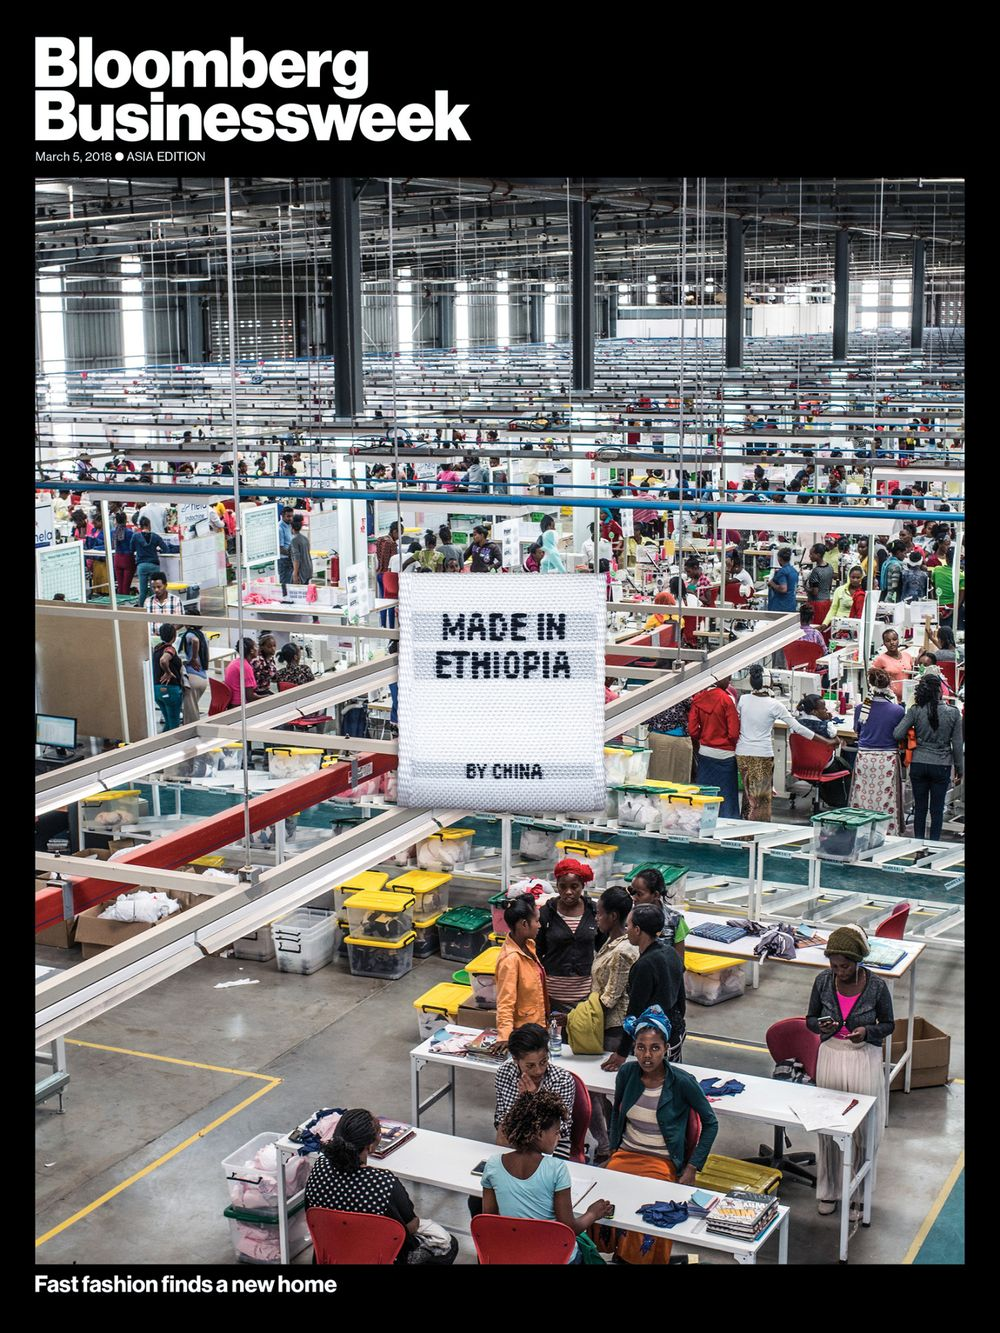 China Is Turning Ethiopia Into a Giant Fast-Fashion Factory - Bloomberg